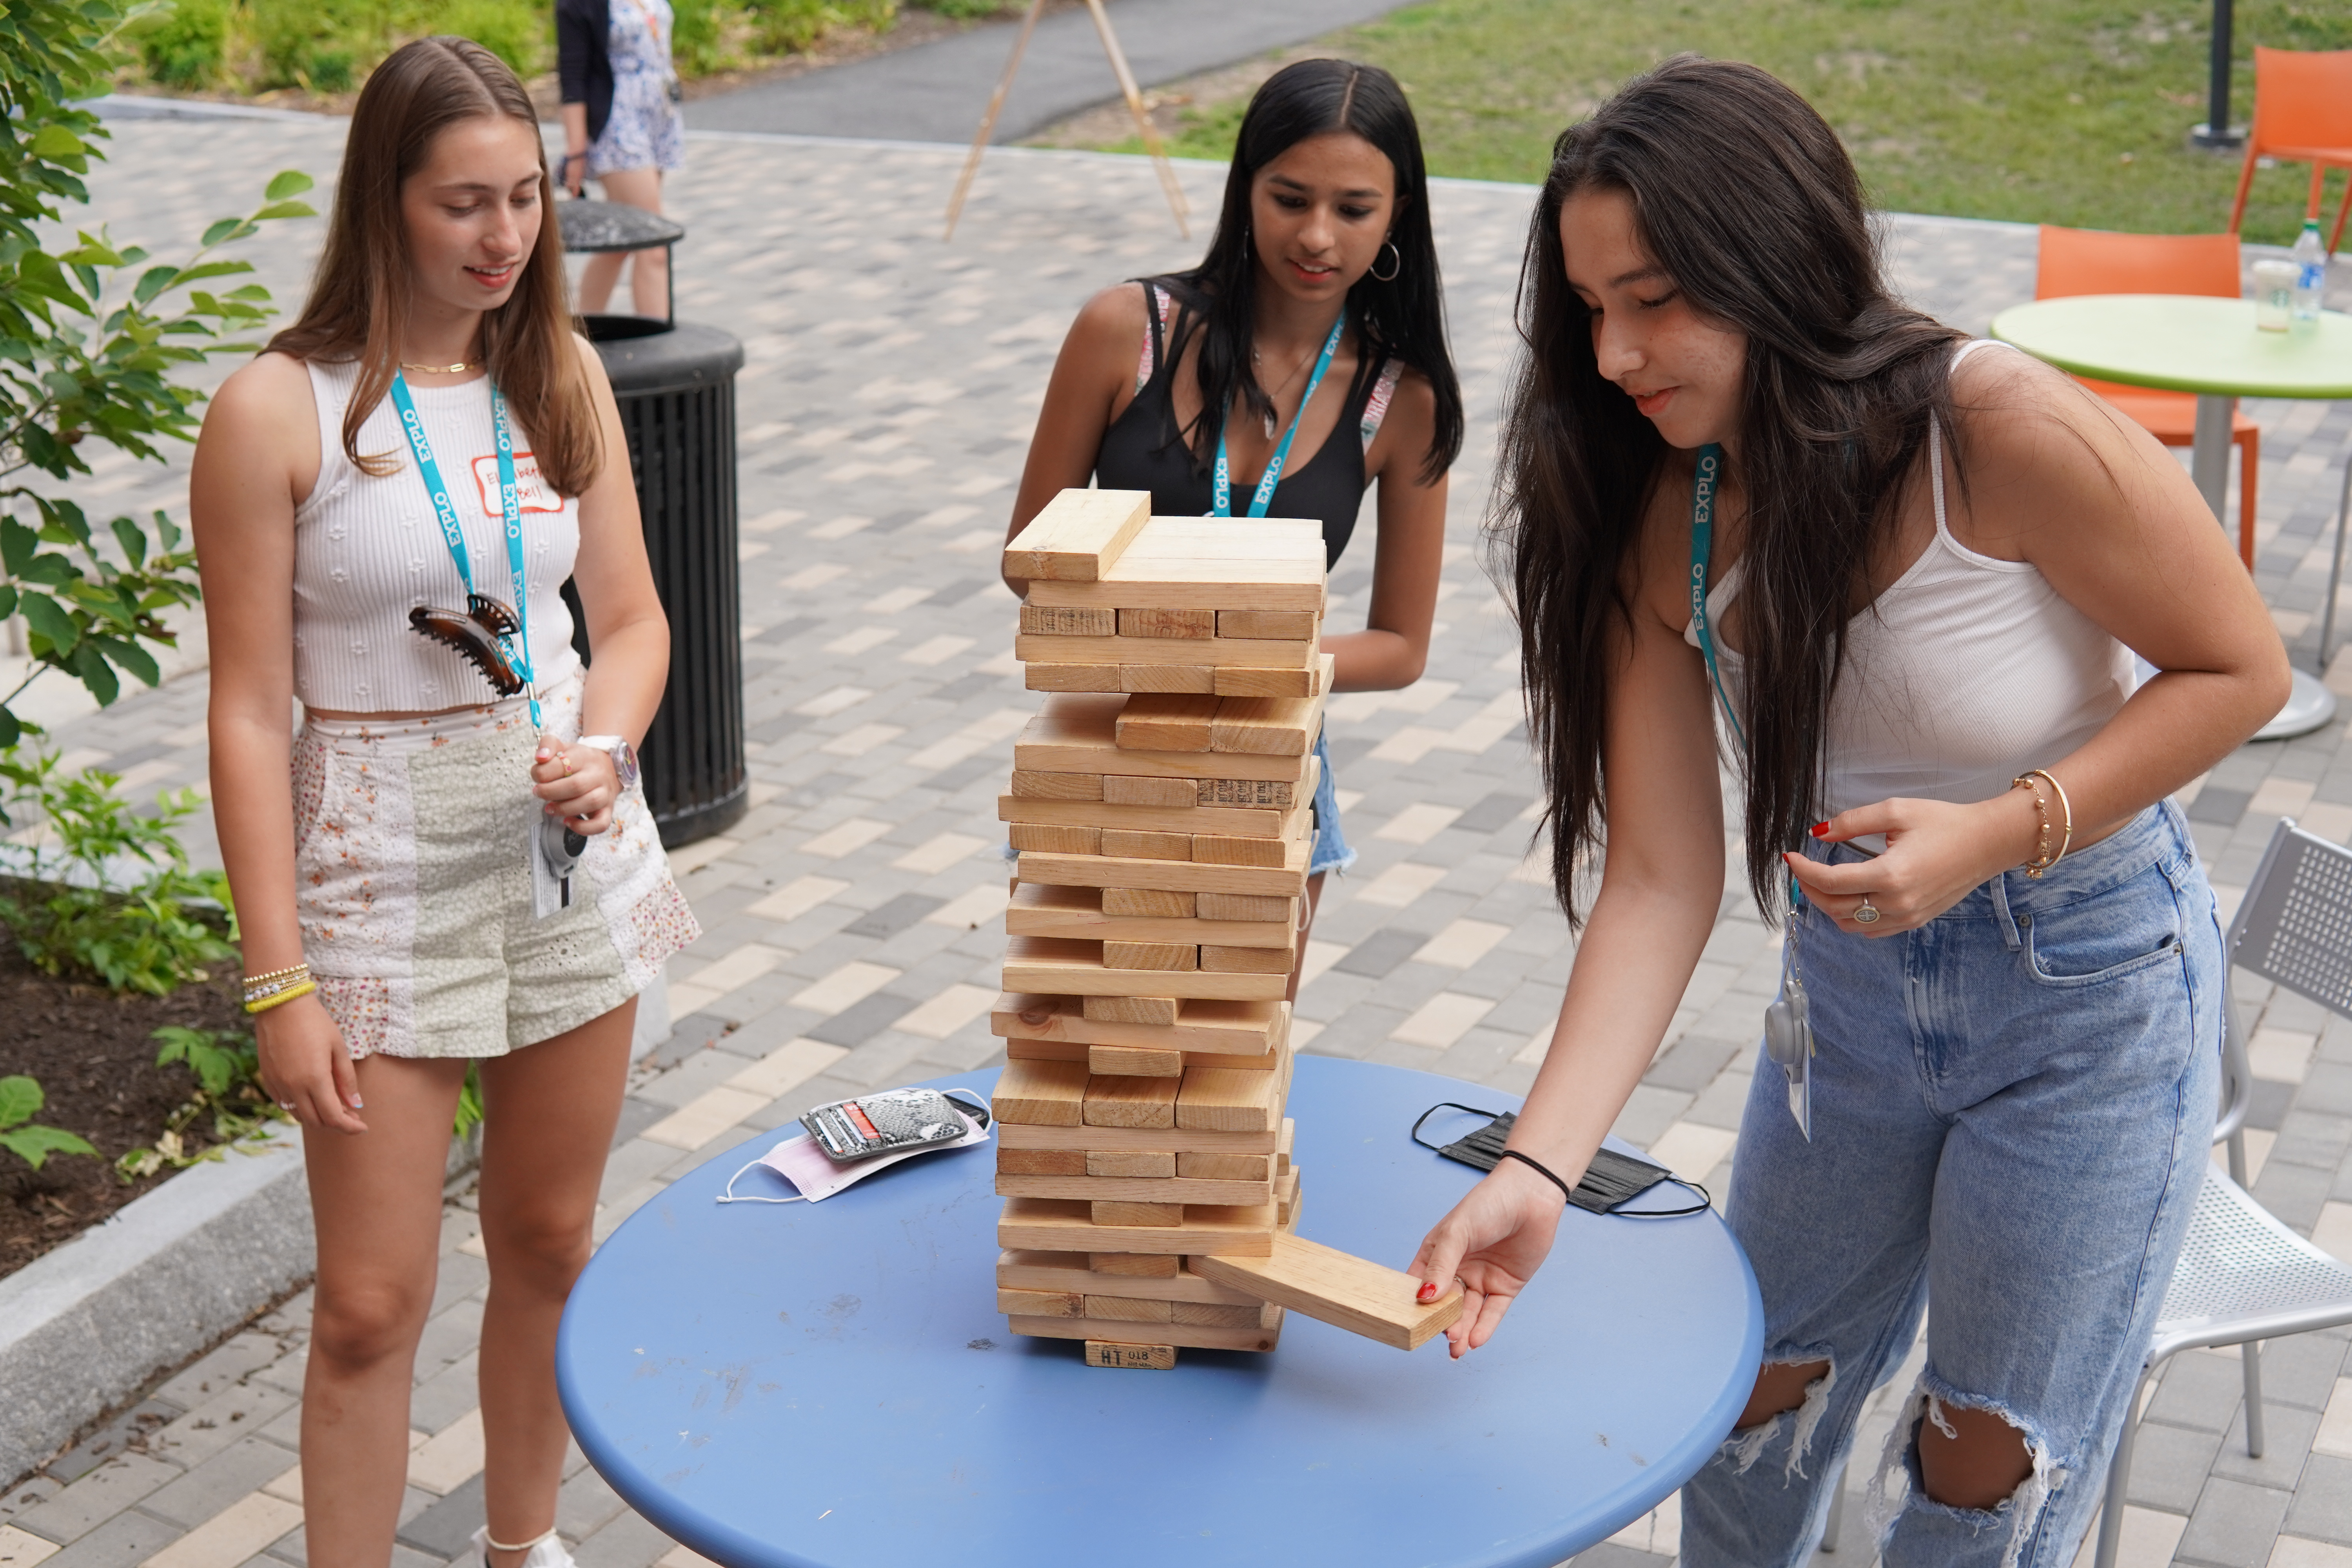 A student pulls a block from near the base of the tower as two others look on in hopes that it falls for their competitor